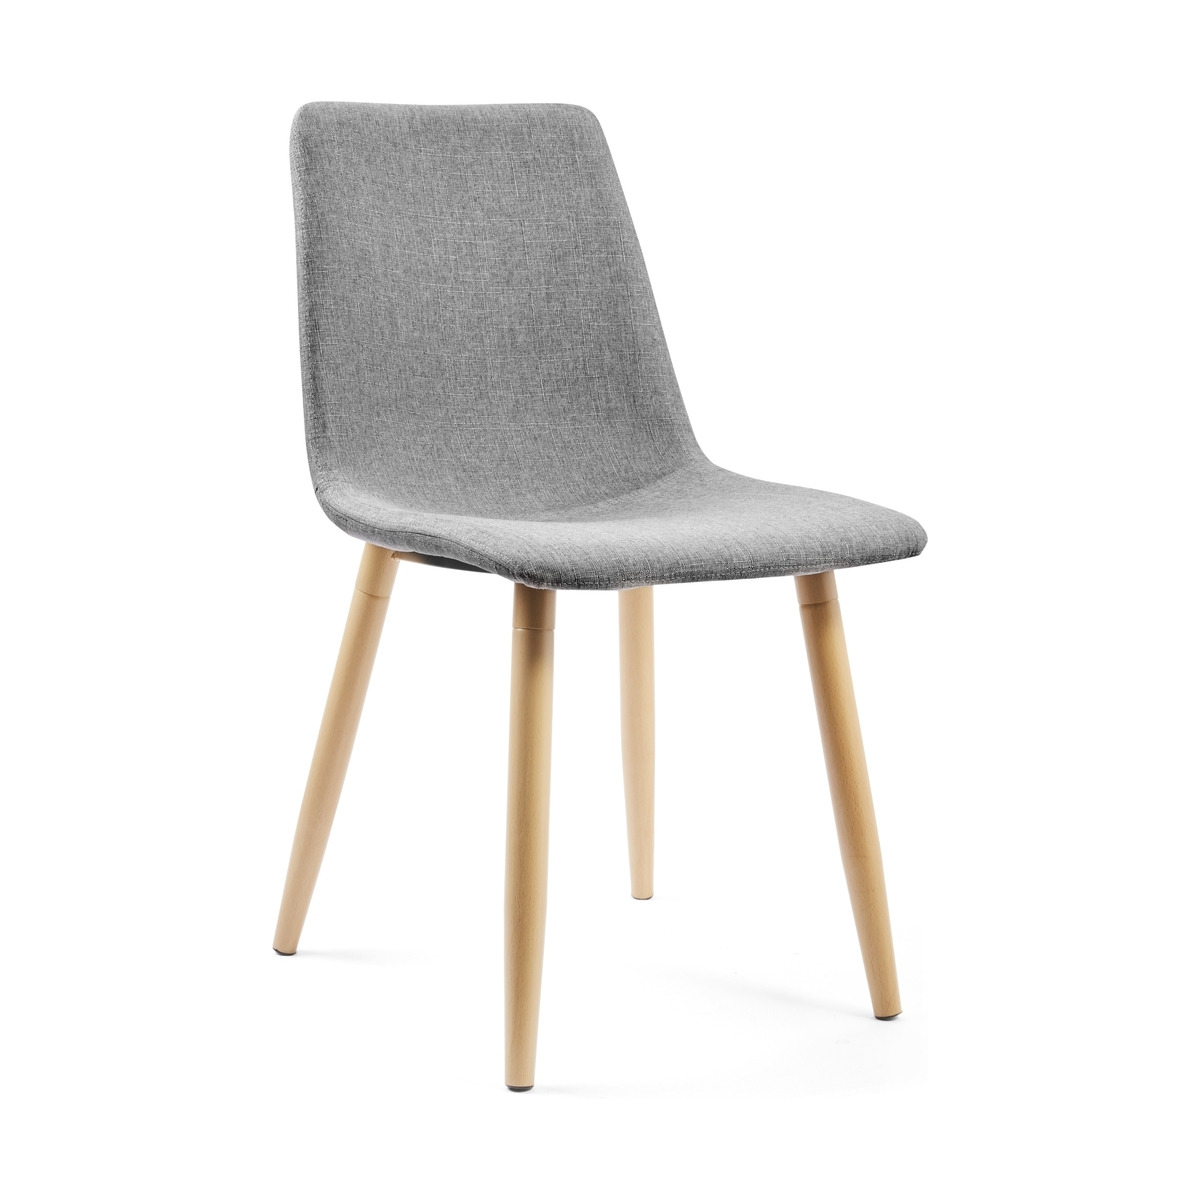 Upholster Dining Room Chairs: Upholstered Dining Chair